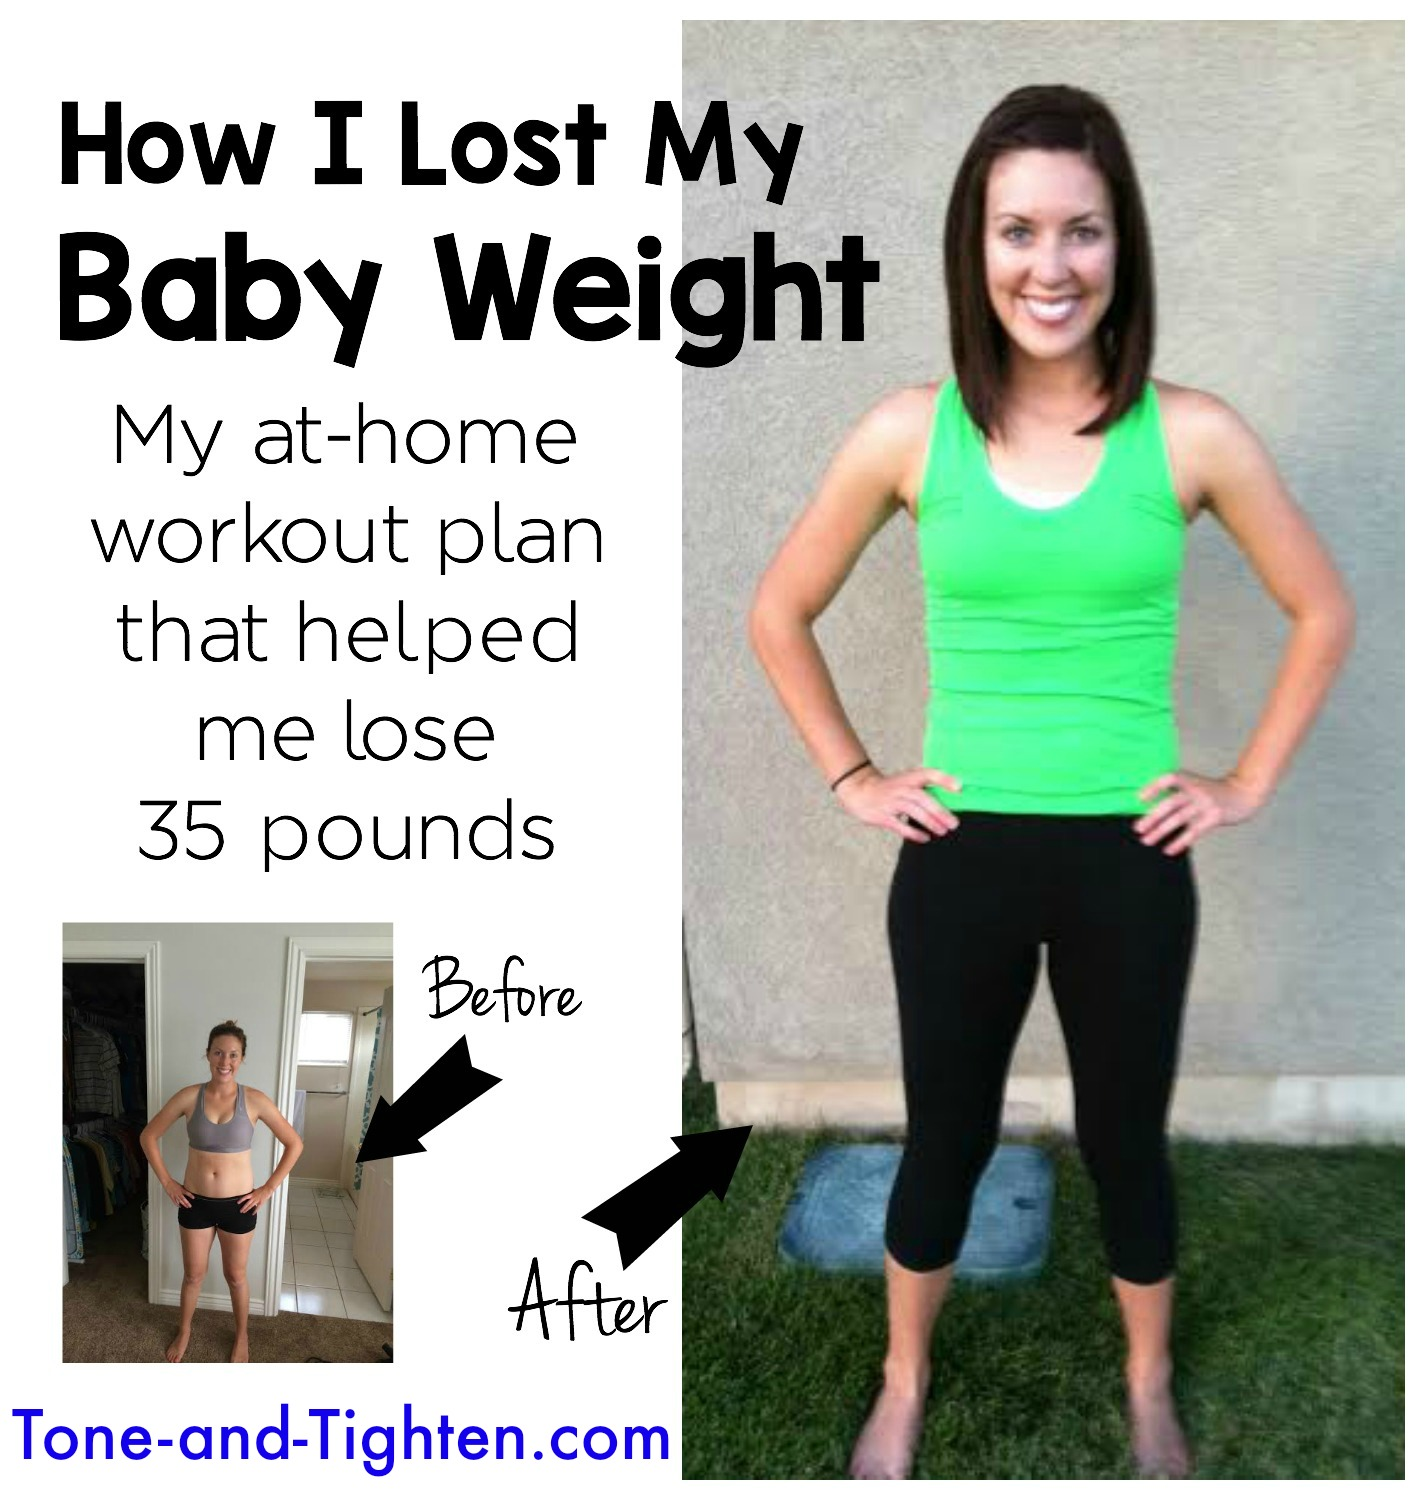 How-I-Lost-My-Baby-Weight-on-Tone-and-Tighten